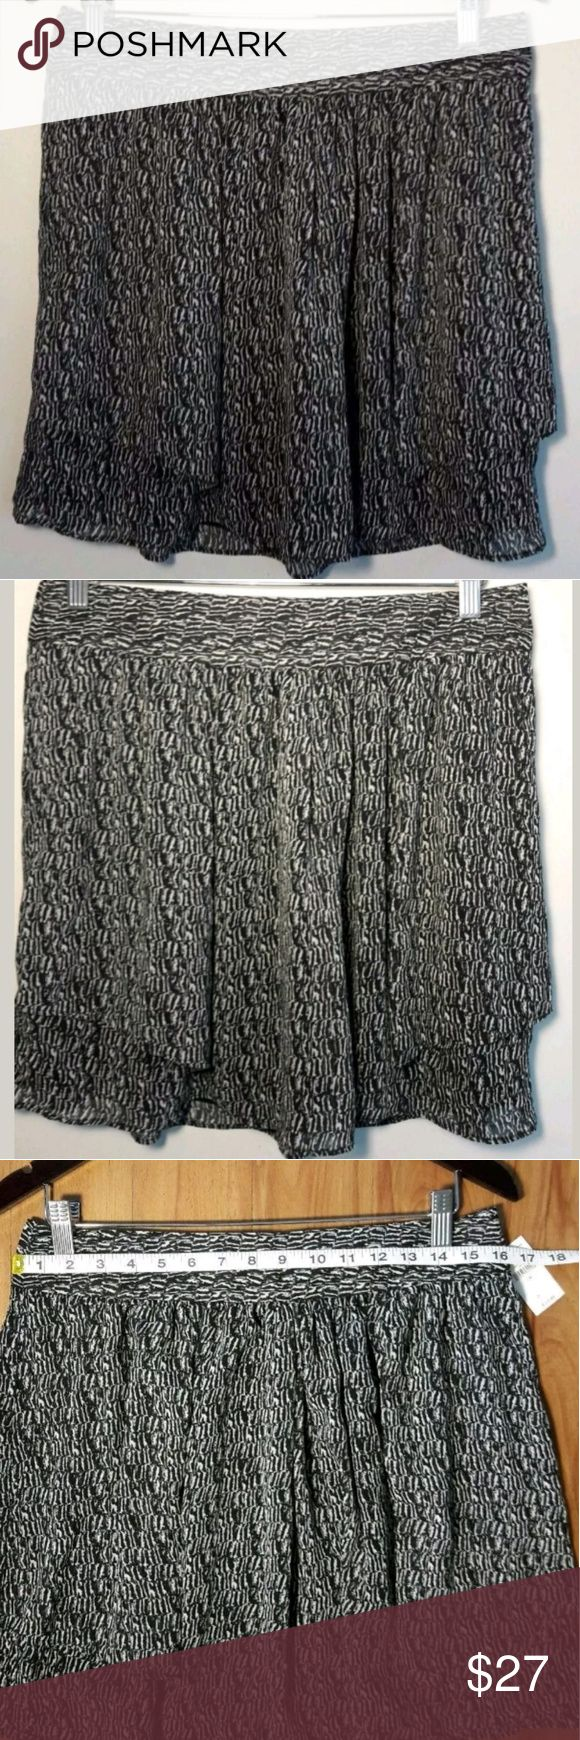 GAP Black/White Boho Chic Flouncy Skirt Size 6 NWT GAP  Black White Textured Flouncy Lined Mini Skirt Boho. Women's Size 6. Super cute, Stylish & Sexy. Perfect for any occasion.   Thank you for Looking & Sharing Happy Poshing😄 GAP Skirts